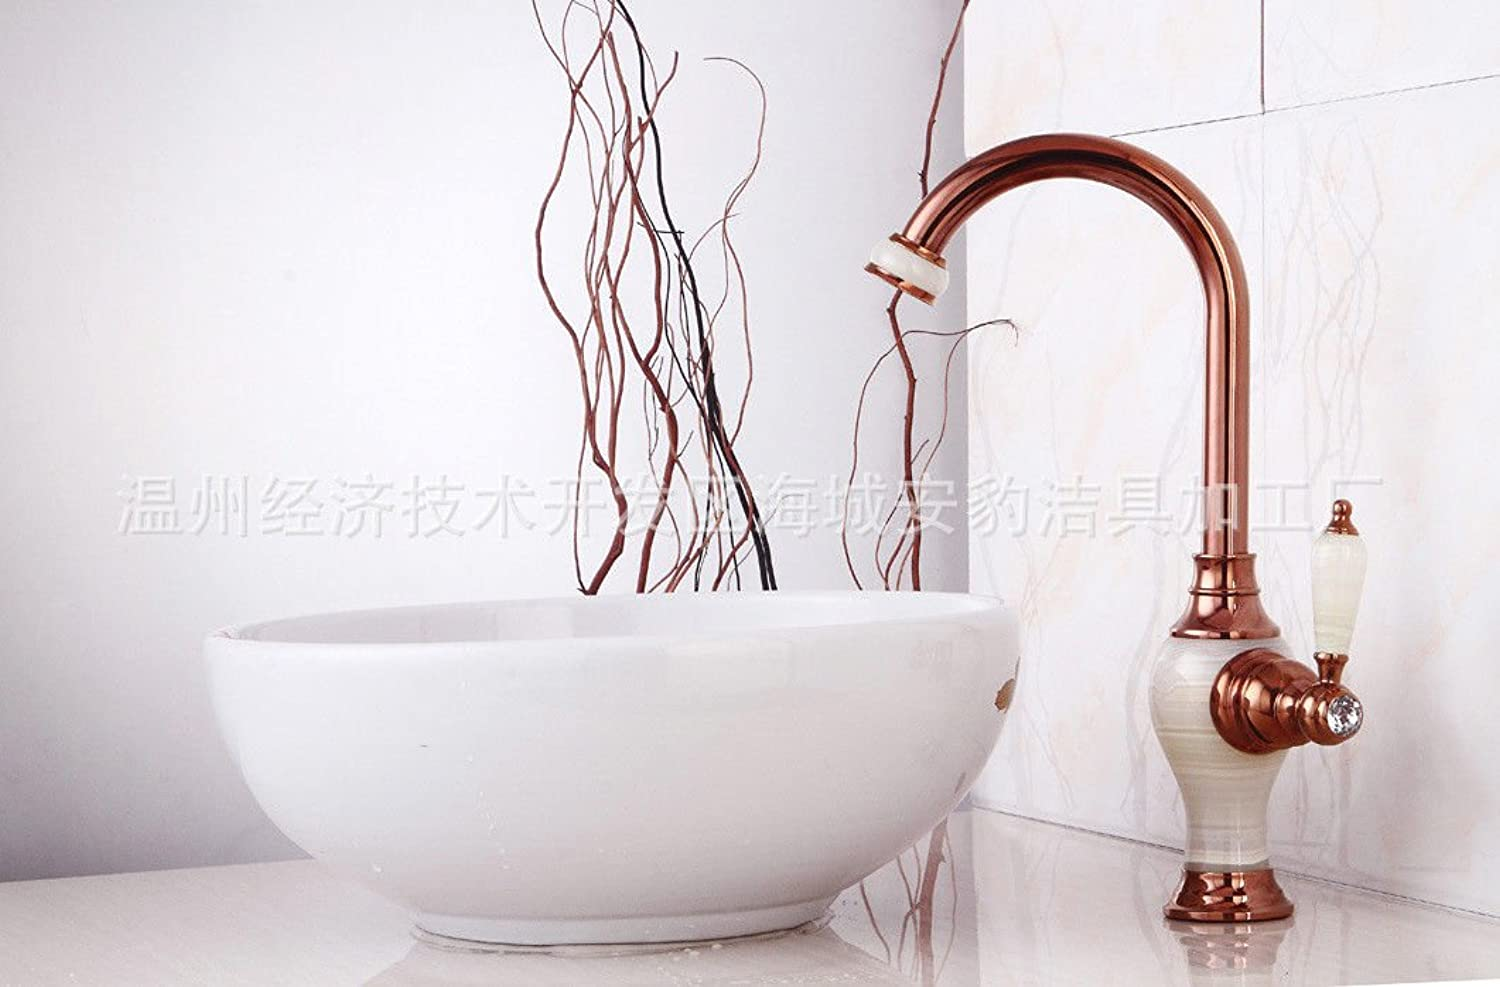 Hlluya Professional Sink Mixer Tap Kitchen Faucet golden Jade antique paint draw-down hot and cold basin mixer